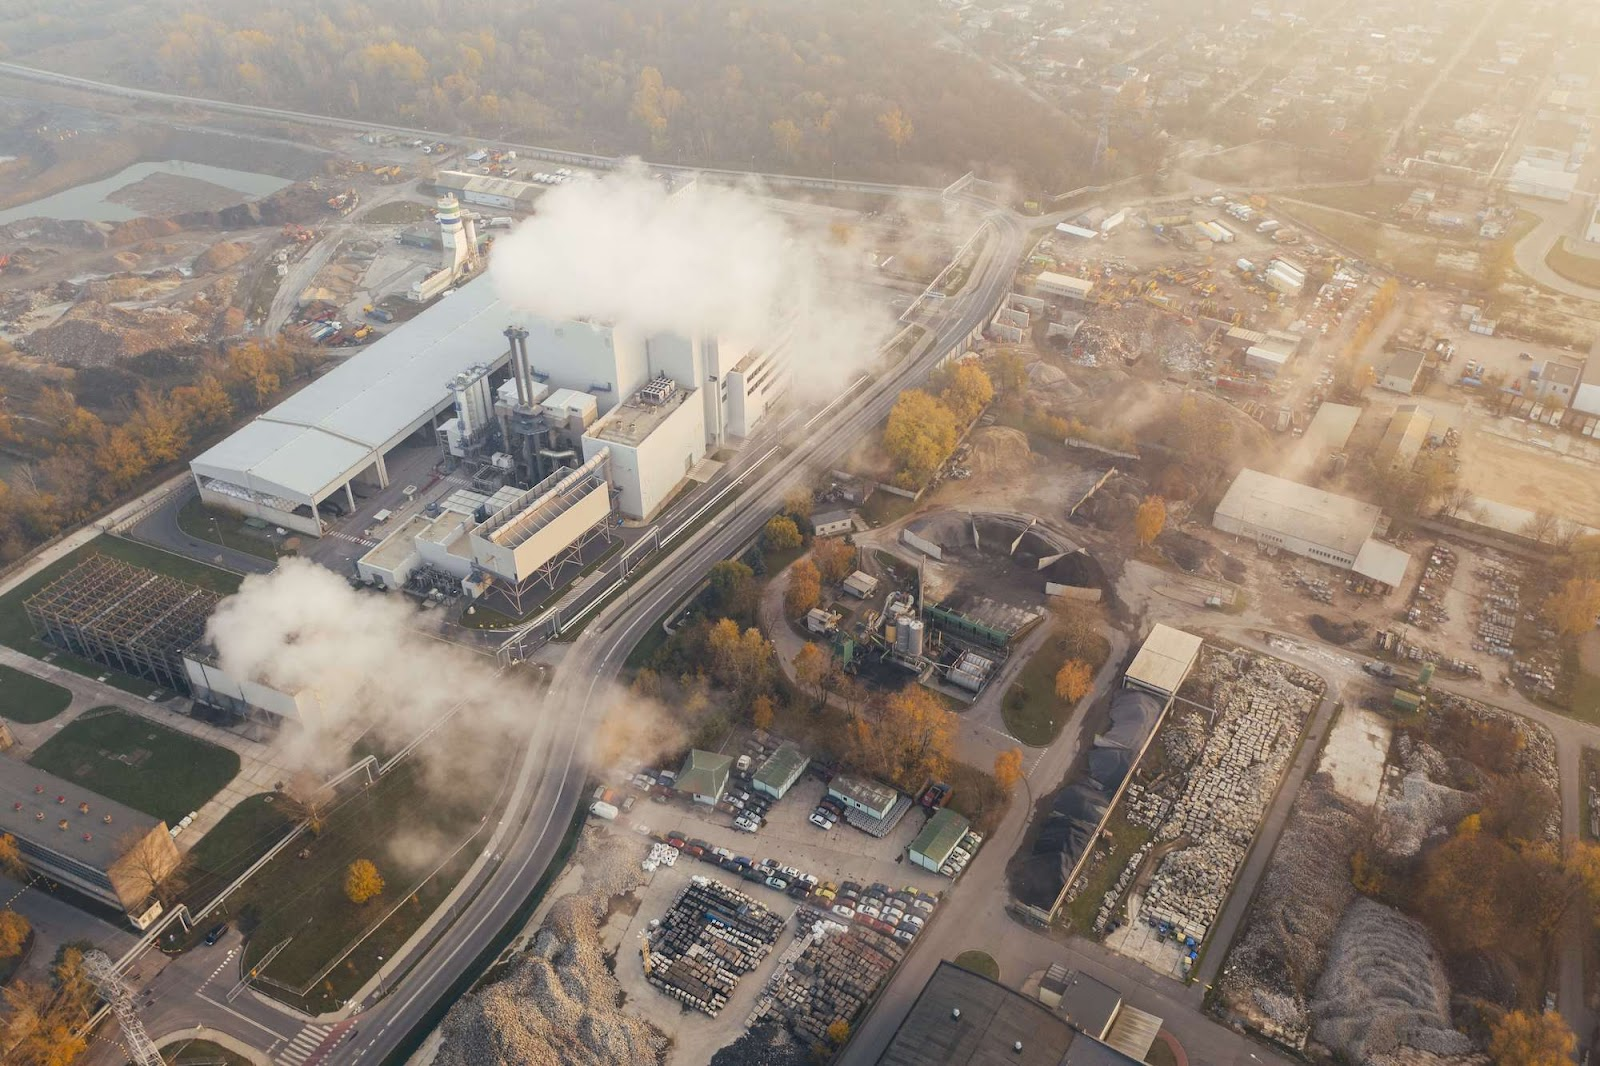 Overhead view of factory spewing emissions